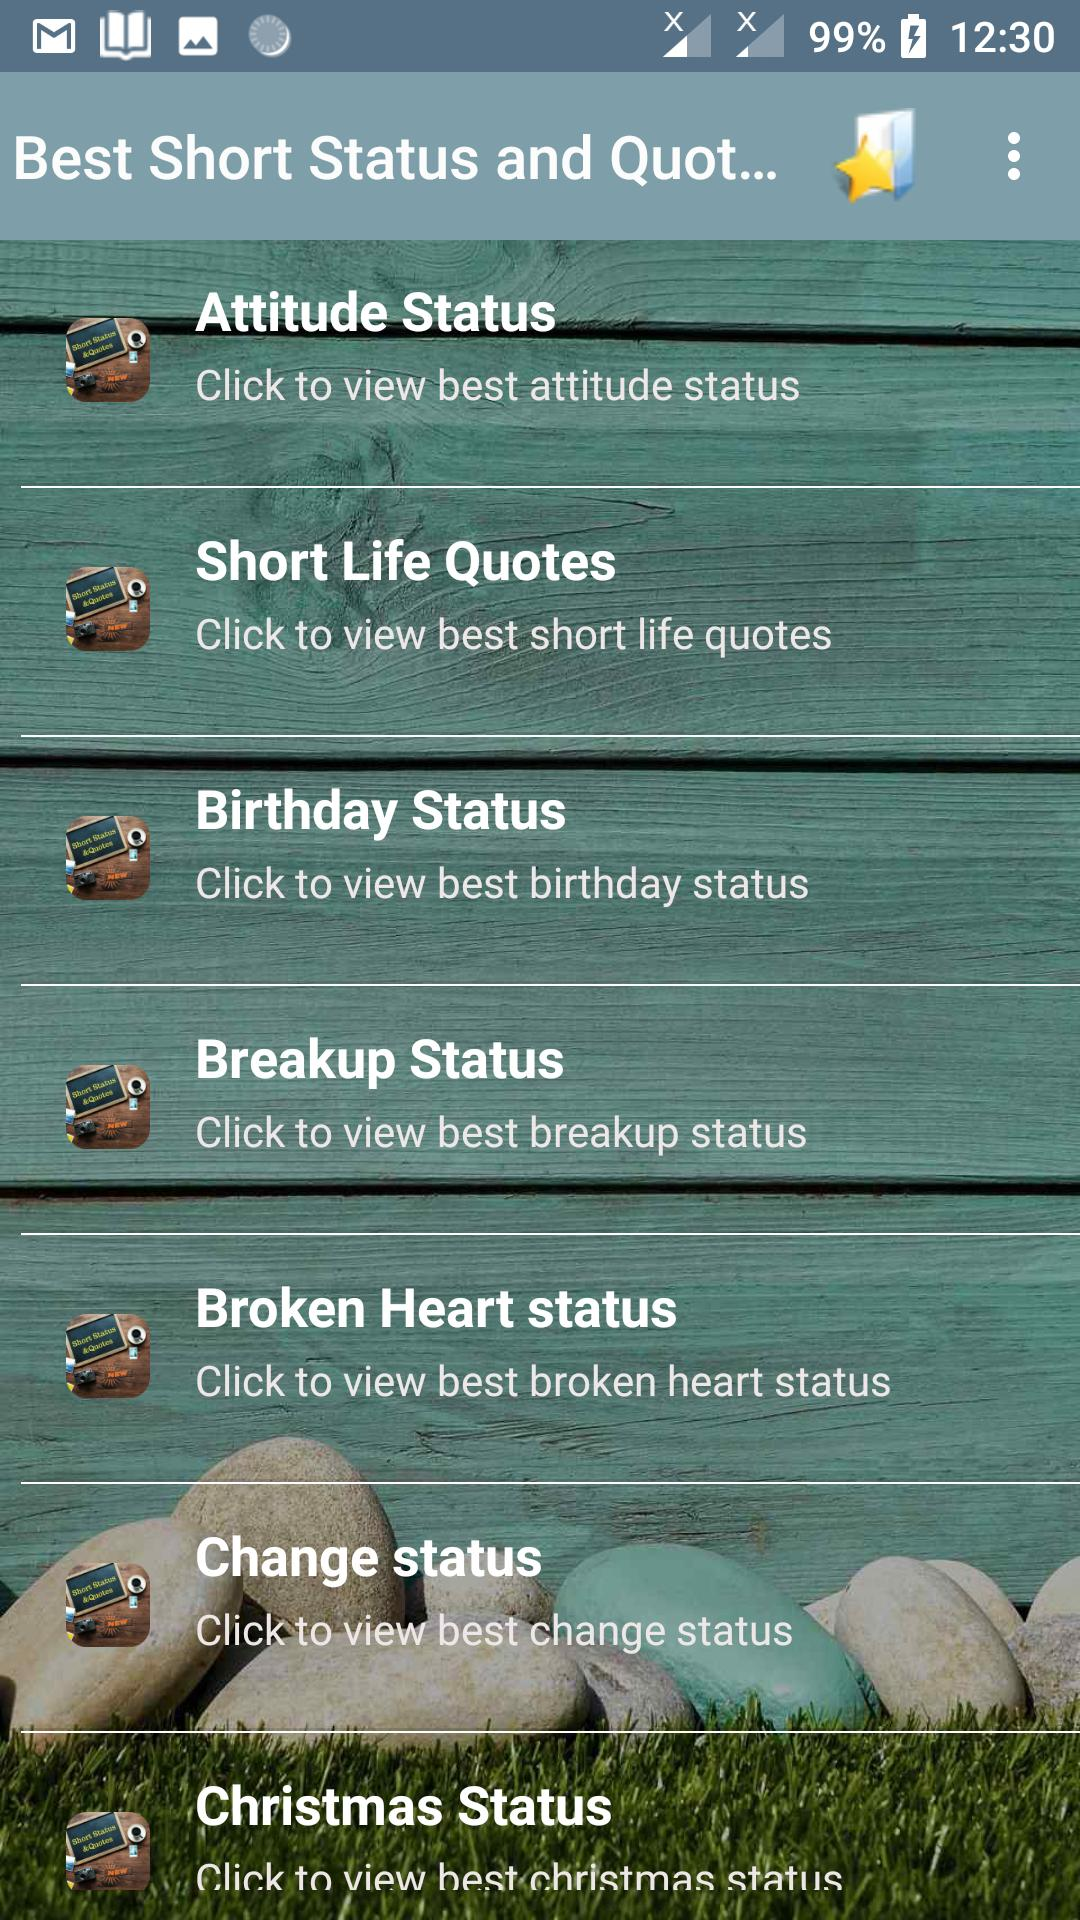 Best Short Status and Quotes for Android - APK Download